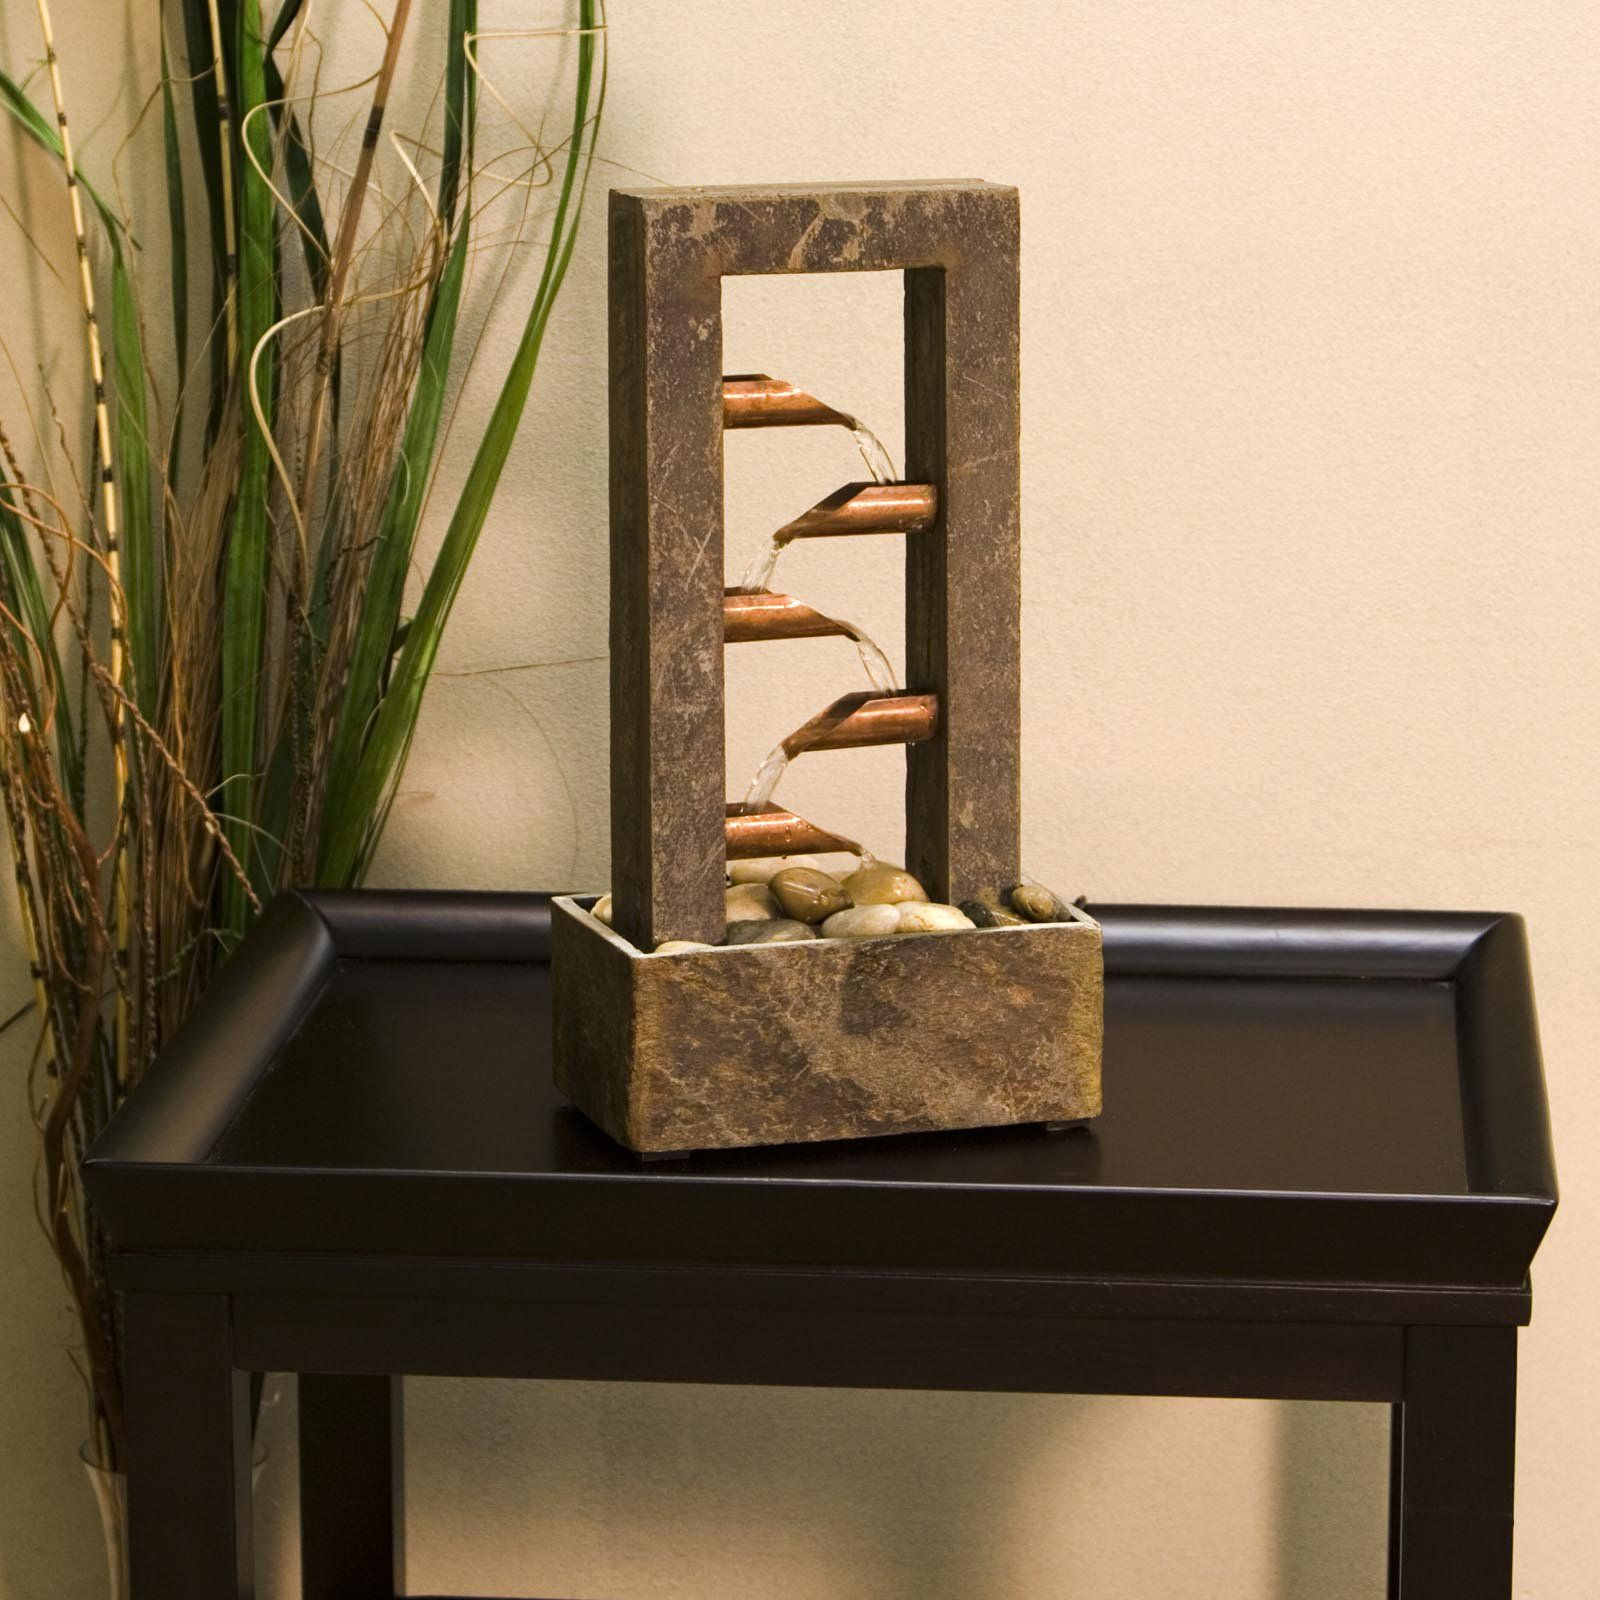 Water fountains masters - Masters Have To Have It Waterdrop Tabletop Water Fountain 149 Hayneedle